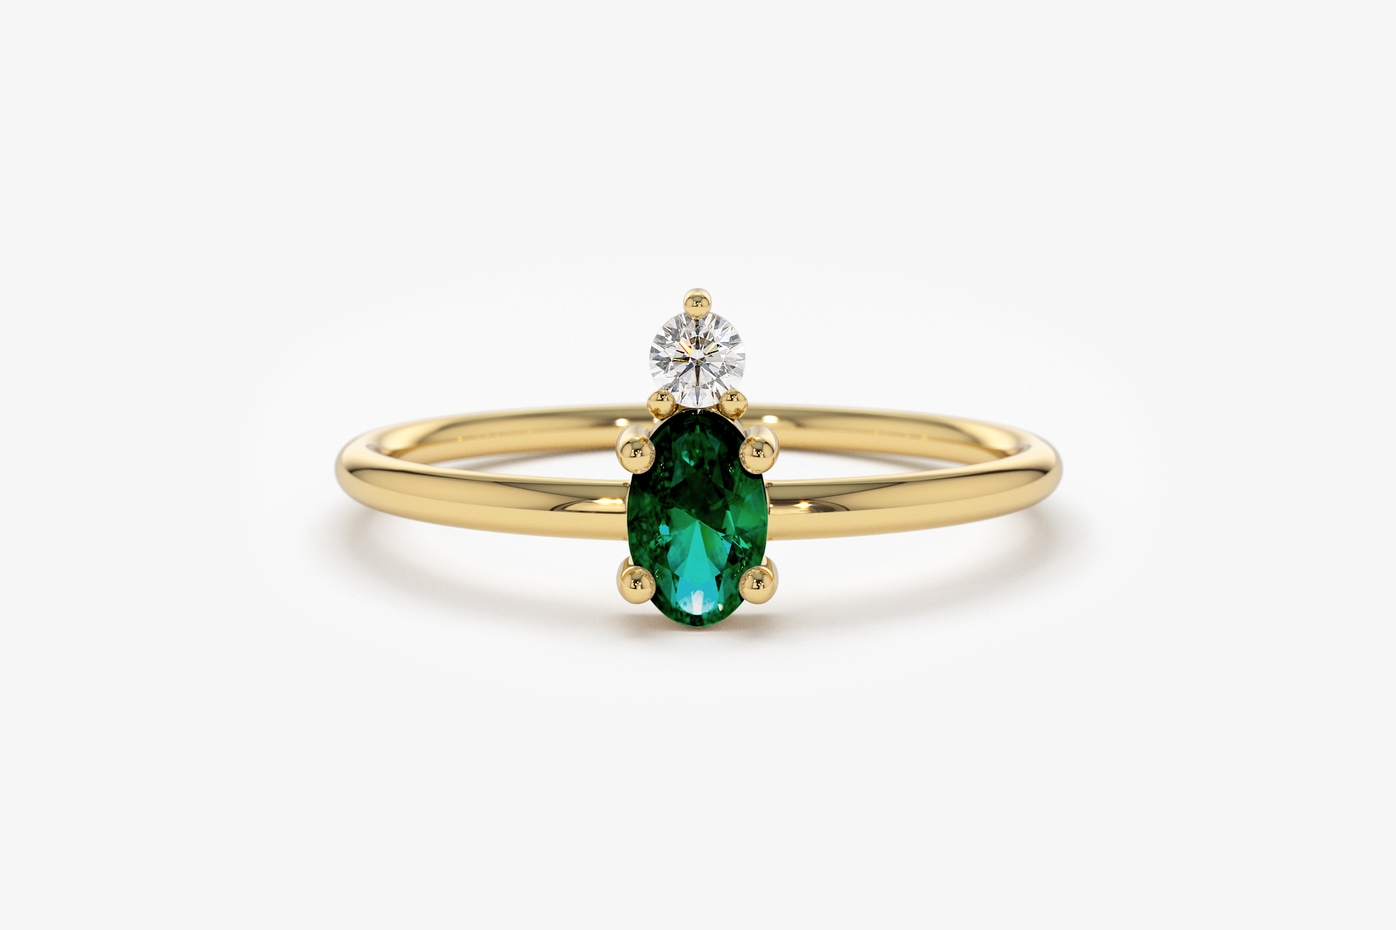 Ring, Emerald, Oval Shape, Yellow Gold